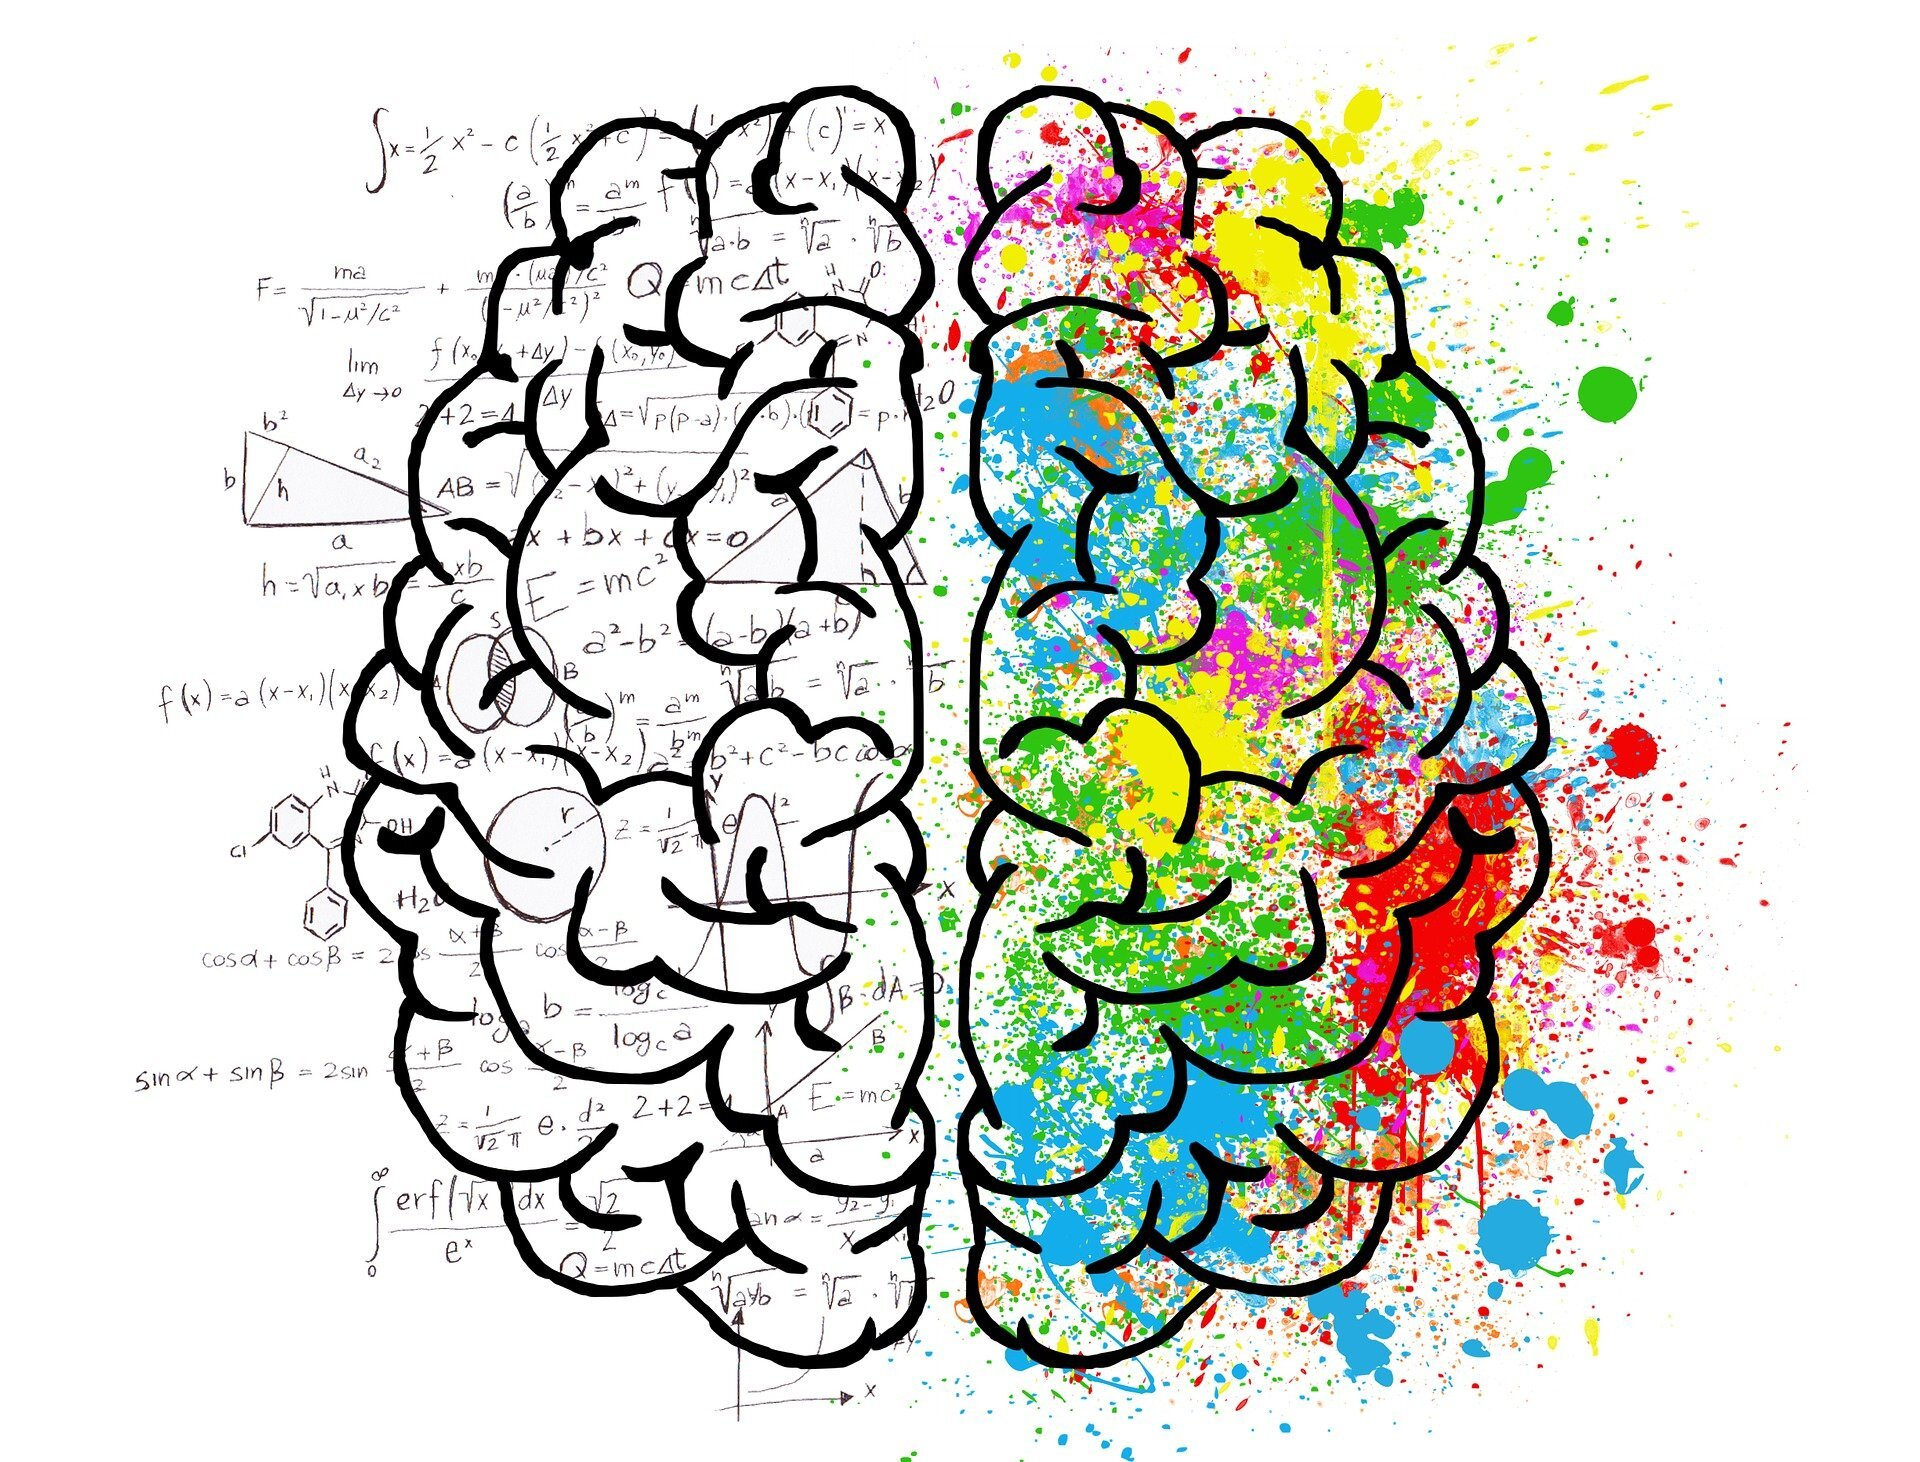 An individual's personality does not lie in their behavior or their genes but in the brain: study